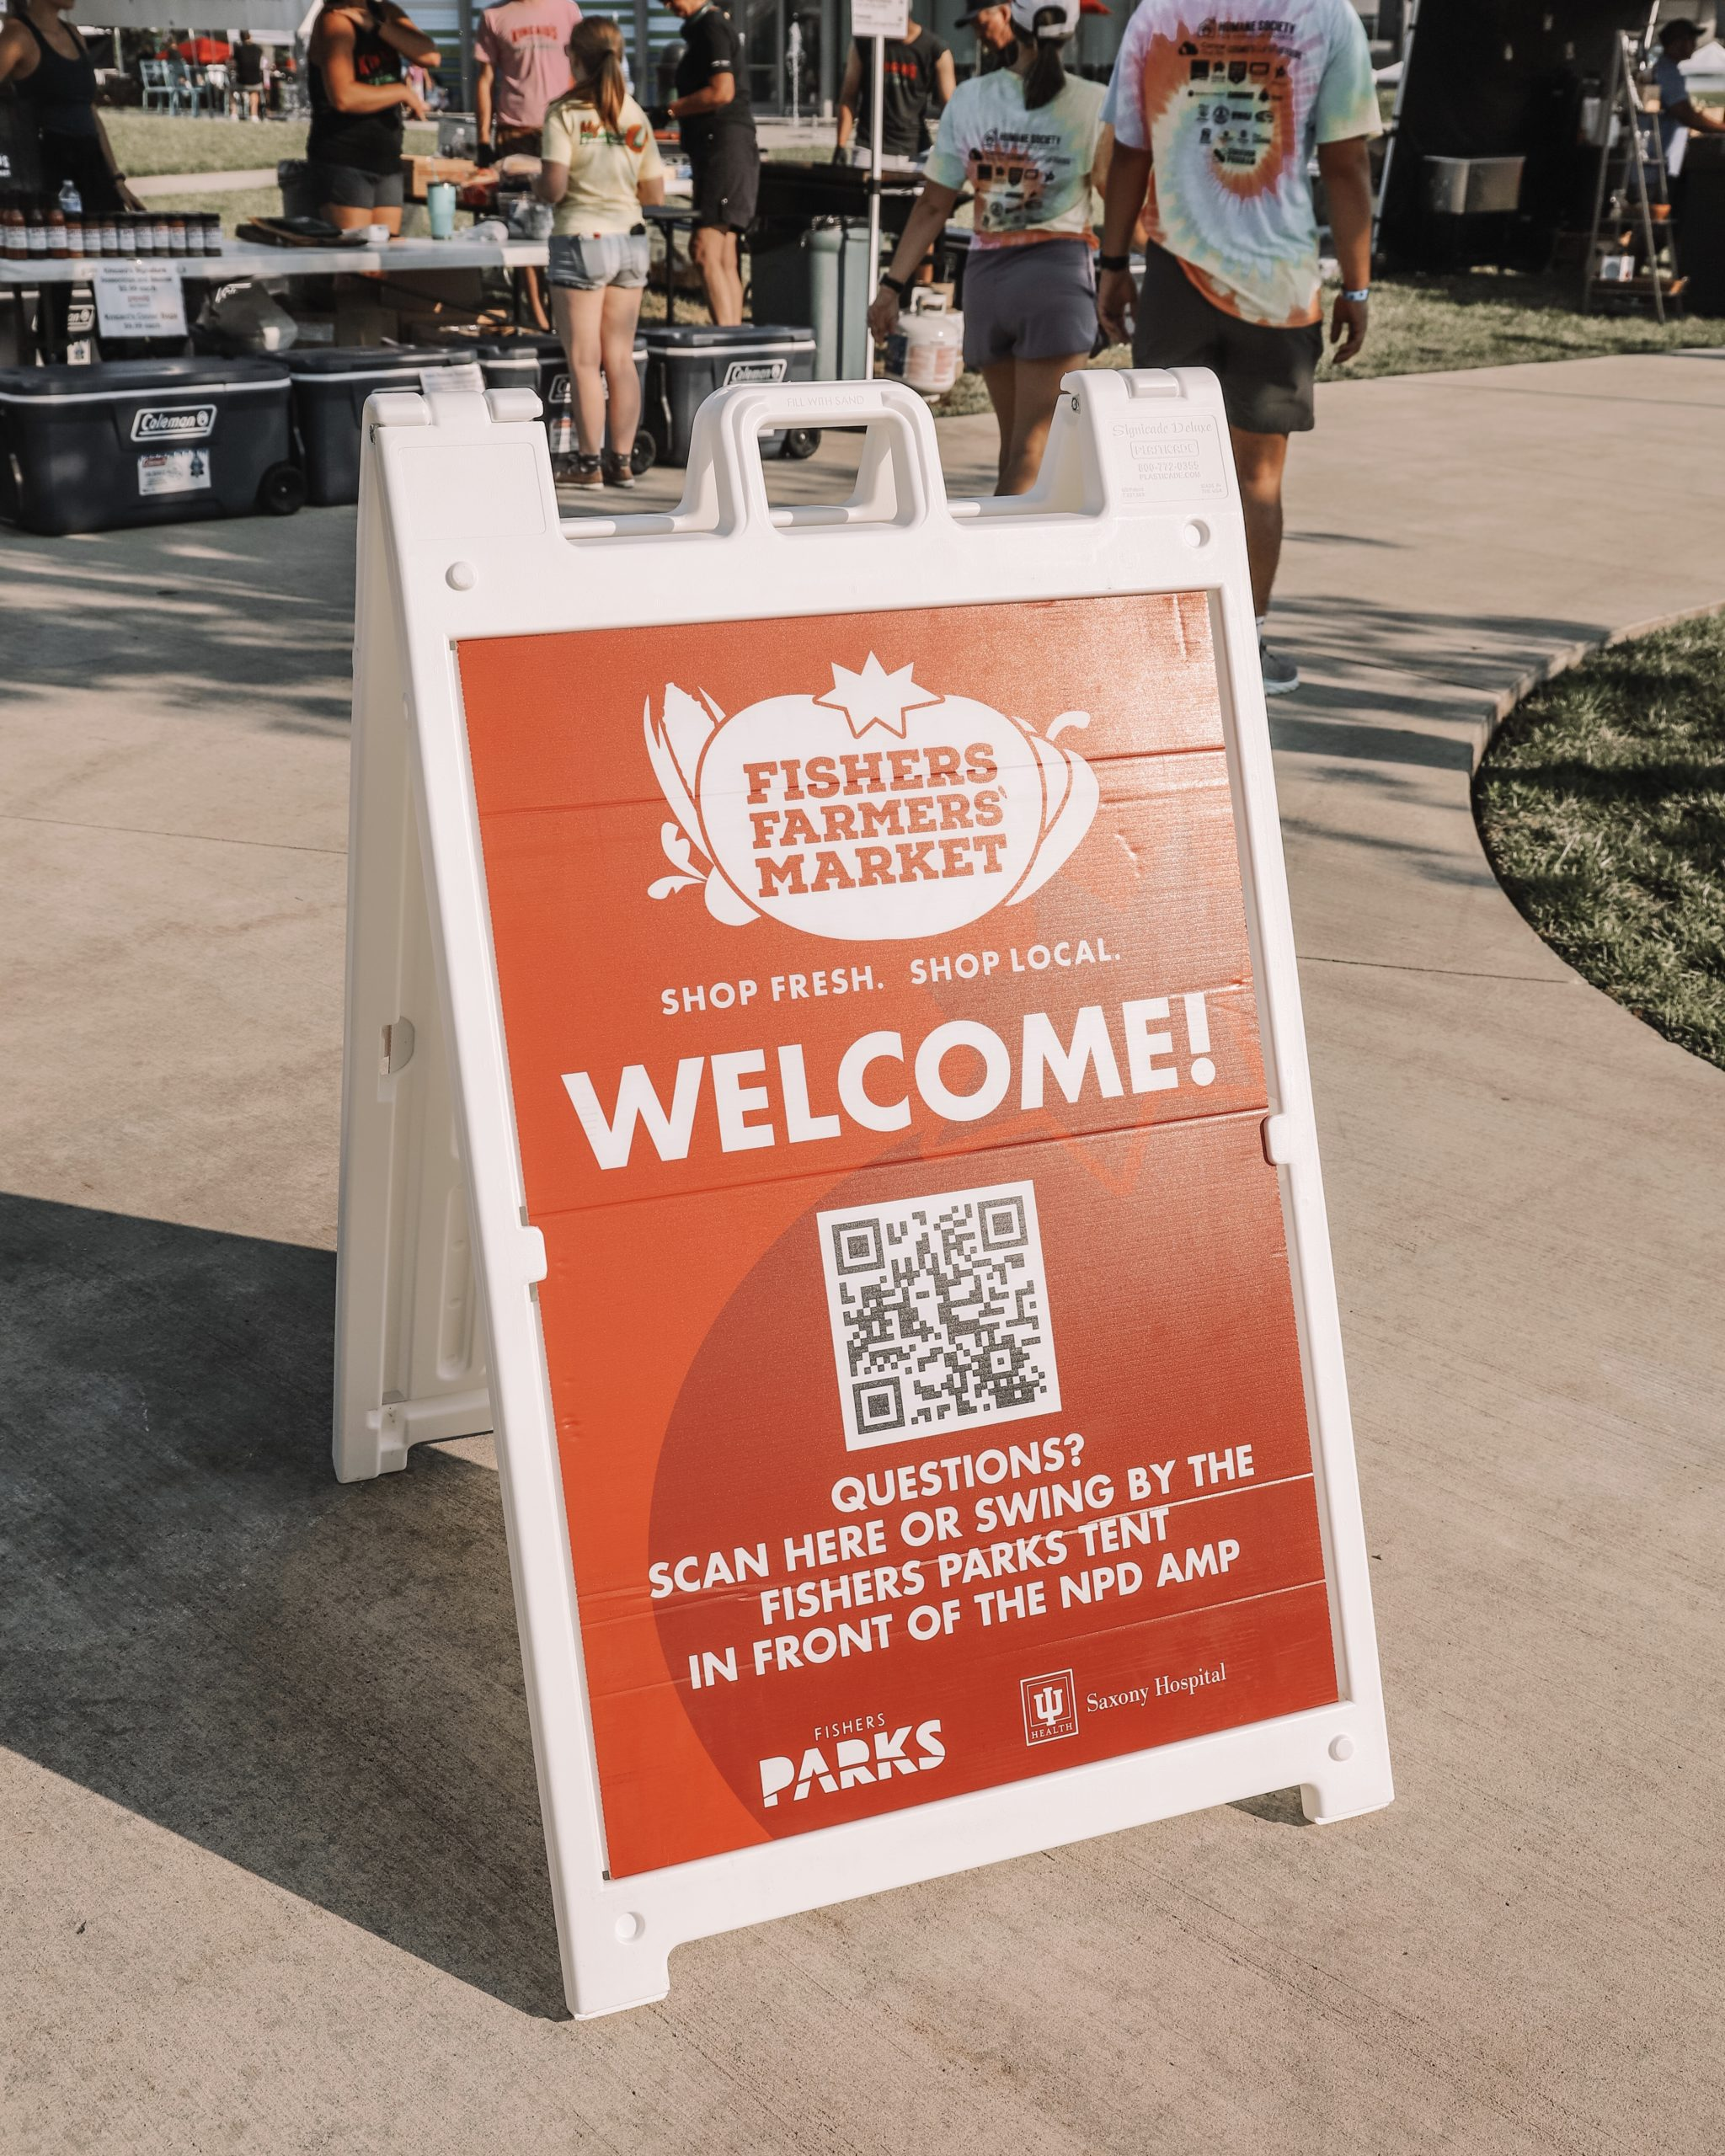 """a sign that says, """"fishers farmers market. shop fresh. shop local. welcome! questions? scan here or swing by the fishers parks tent in front of the npd amp."""""""